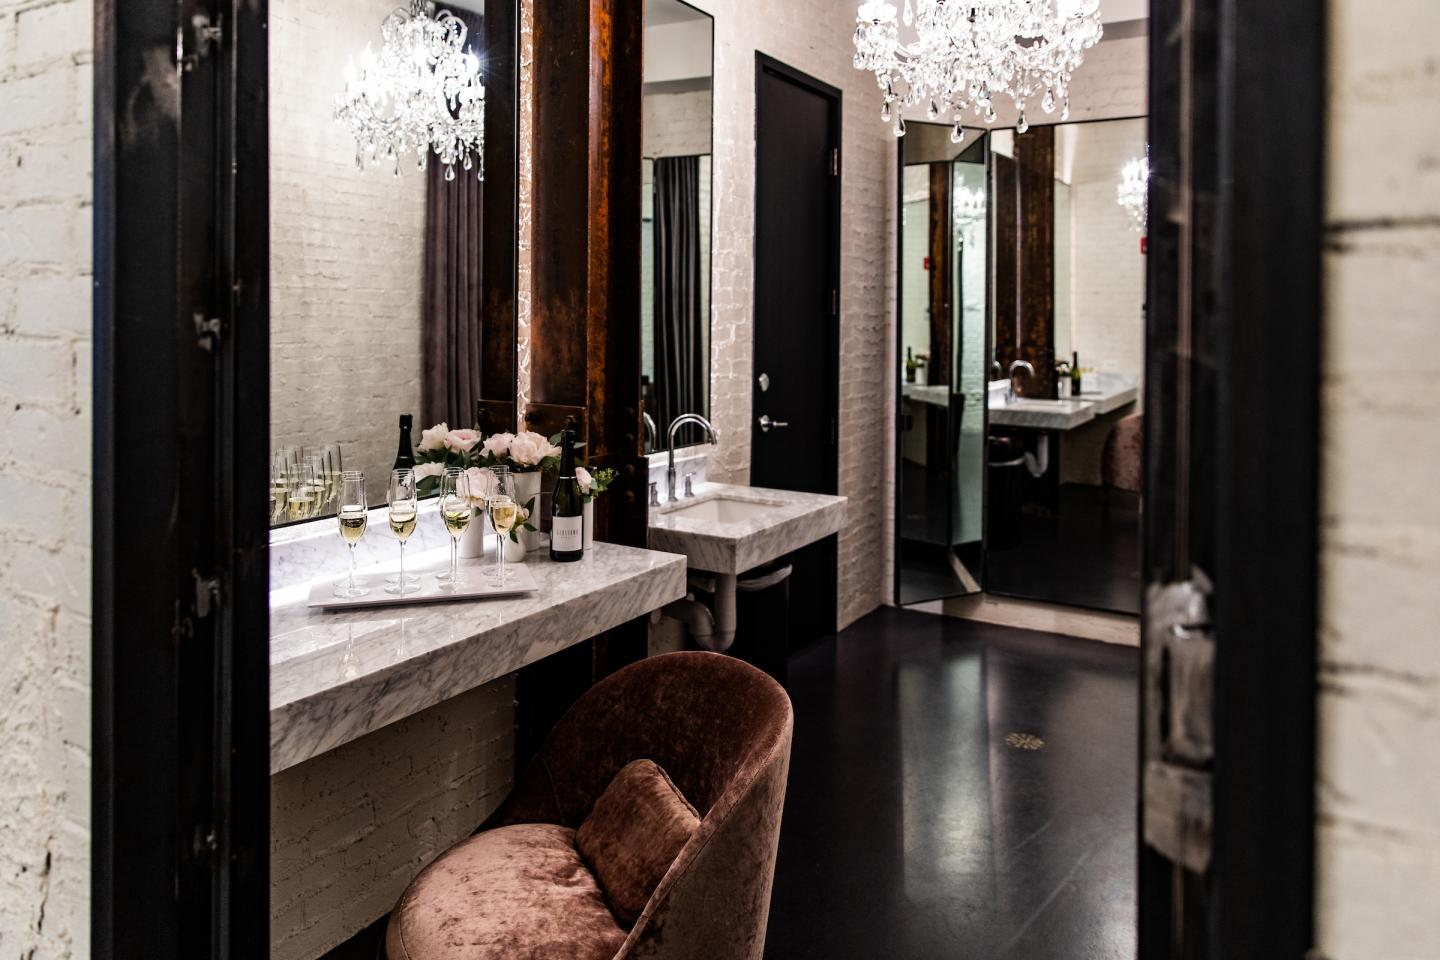 The Bridal Suite at the Dalcy